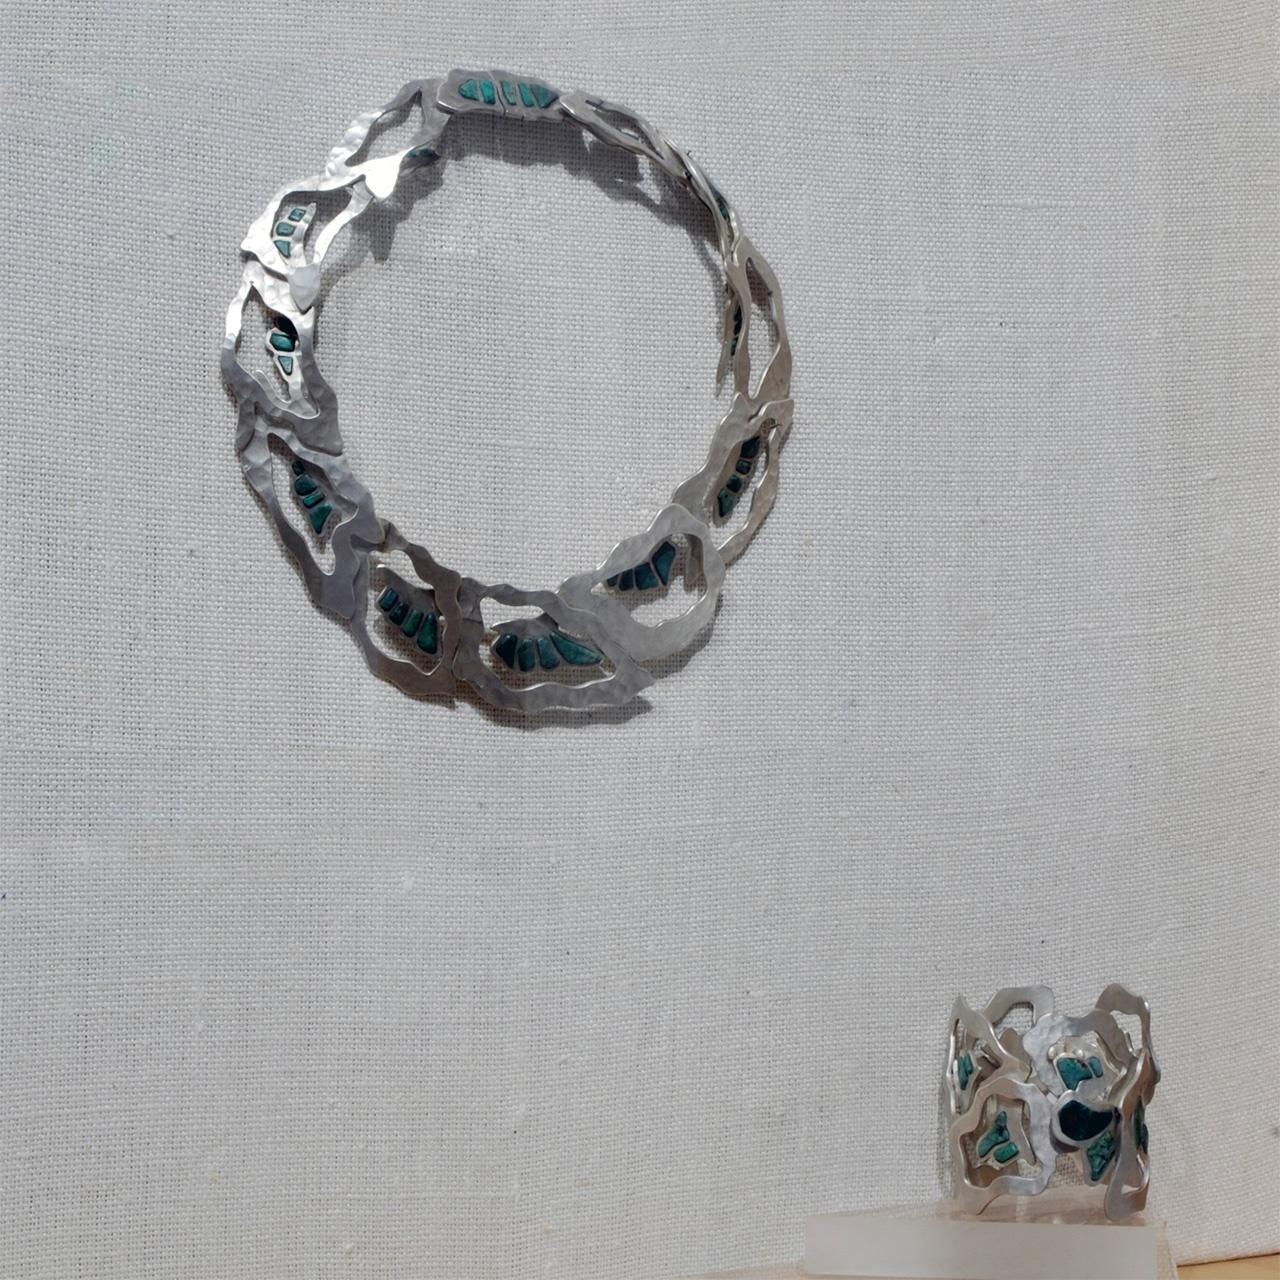 Objects, Borders and Neighbors, Pole, Necklace and cuff, Silver